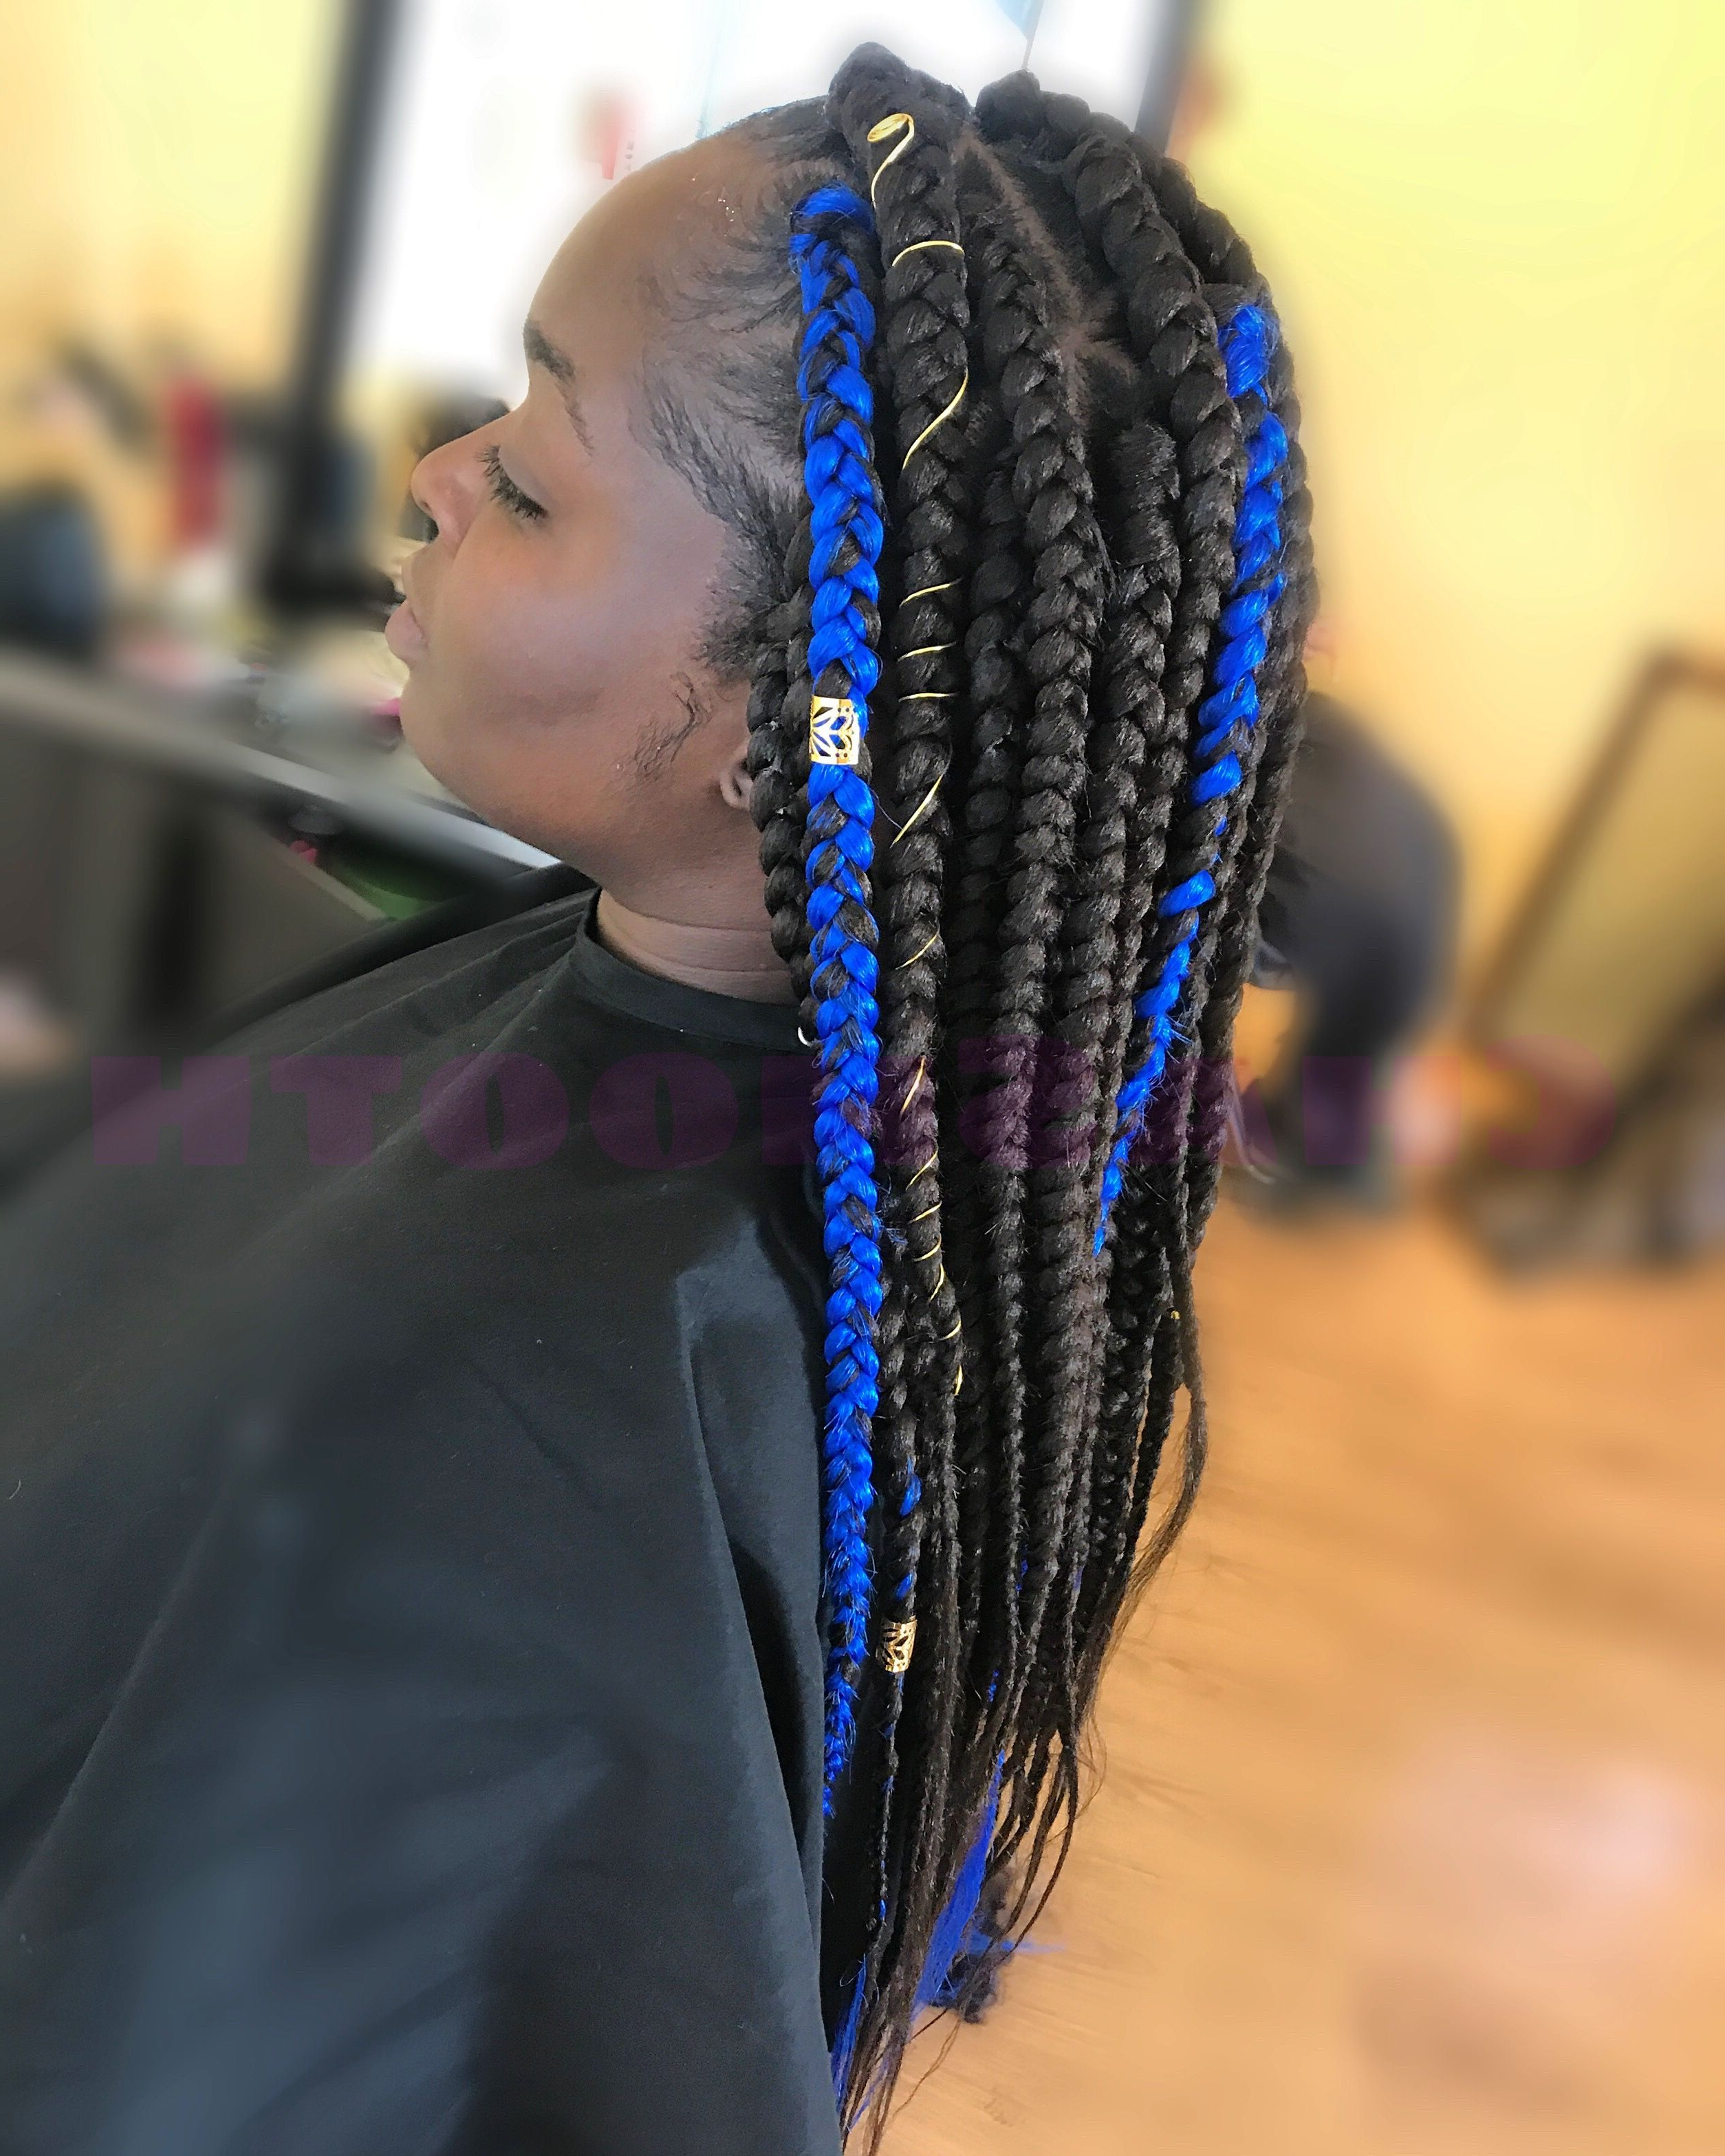 Jumbo Regarding 2019 Blue And Black Cornrows Braid Hairstyles (Gallery 5 of 20)